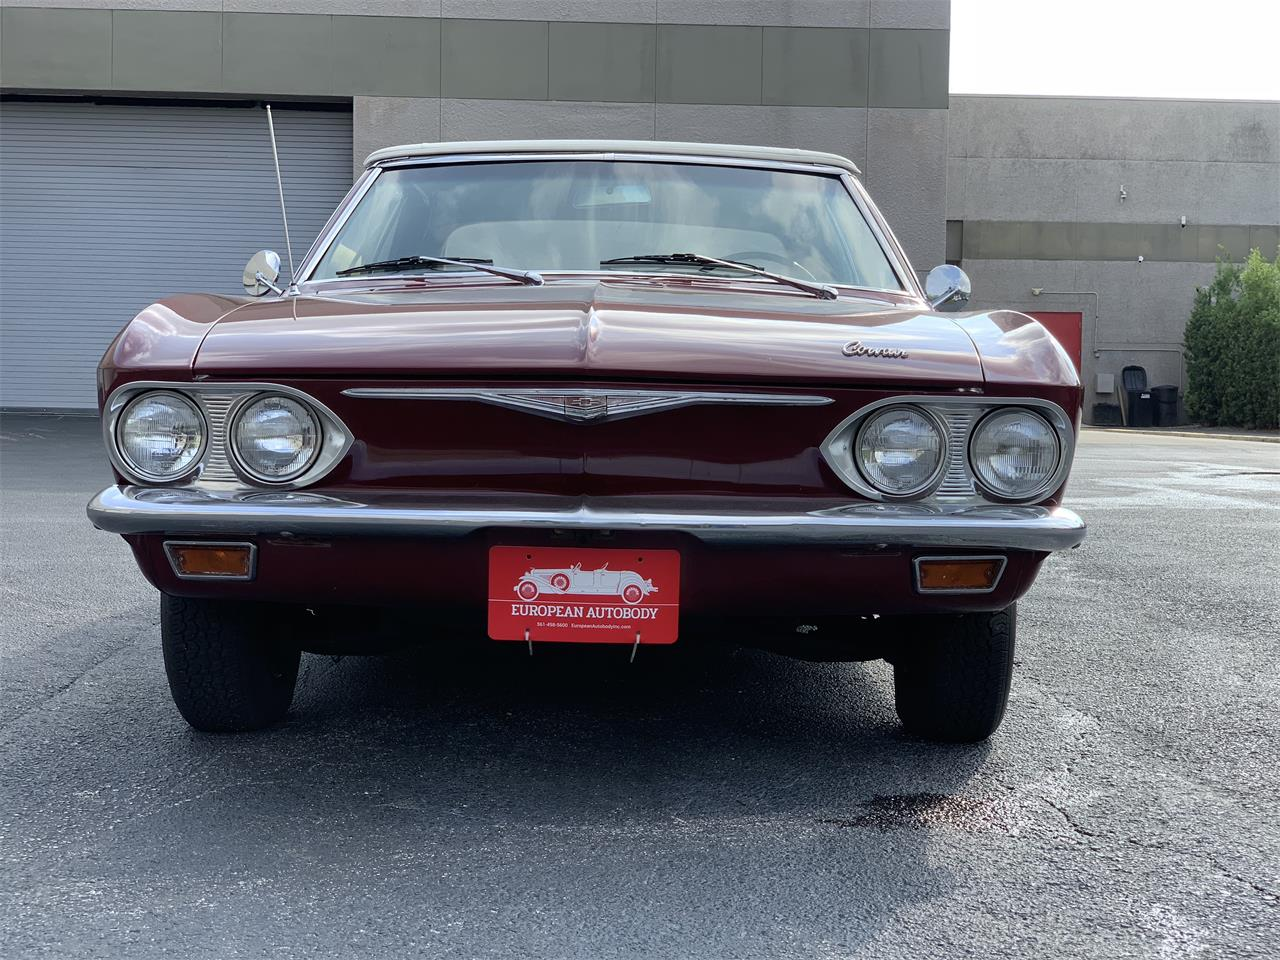 Large Picture of Classic '65 Chevrolet Corvair - $16,900.00 Offered by European Autobody, Inc. - PFHX